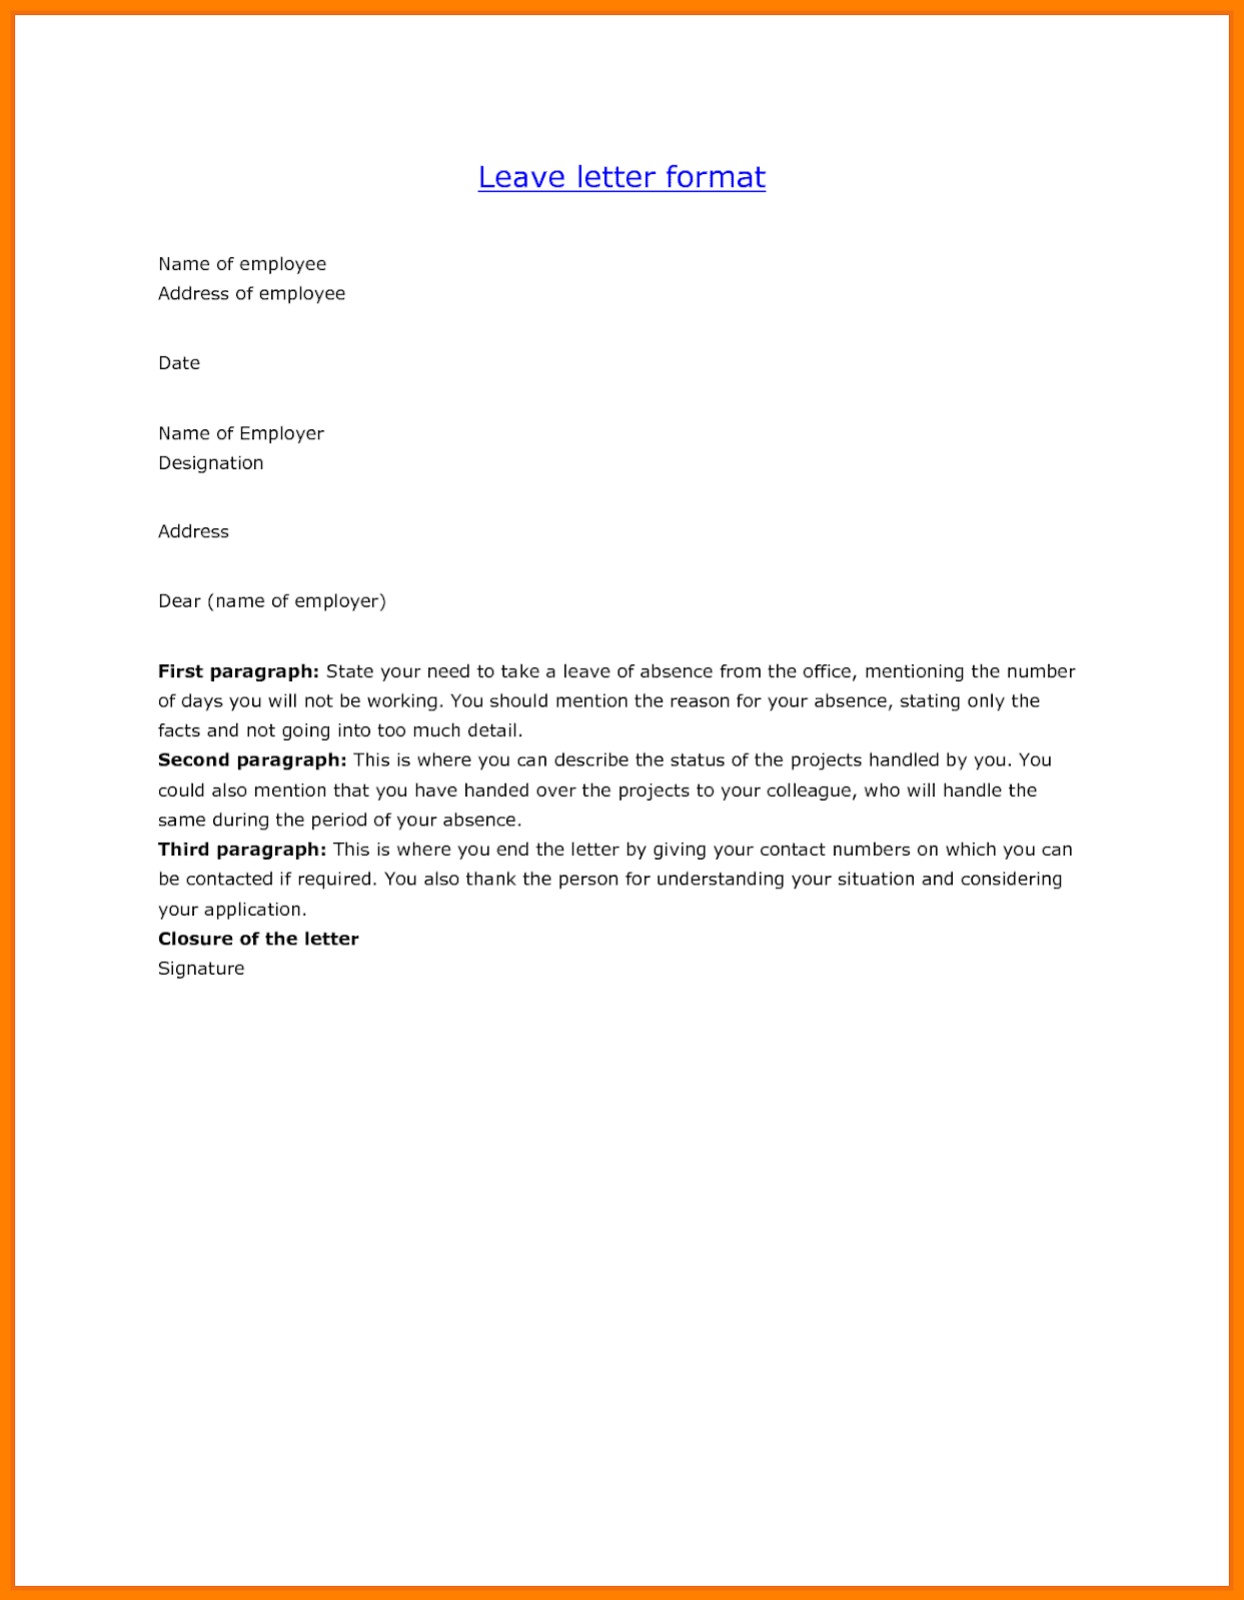 Leave Application Format For Employee